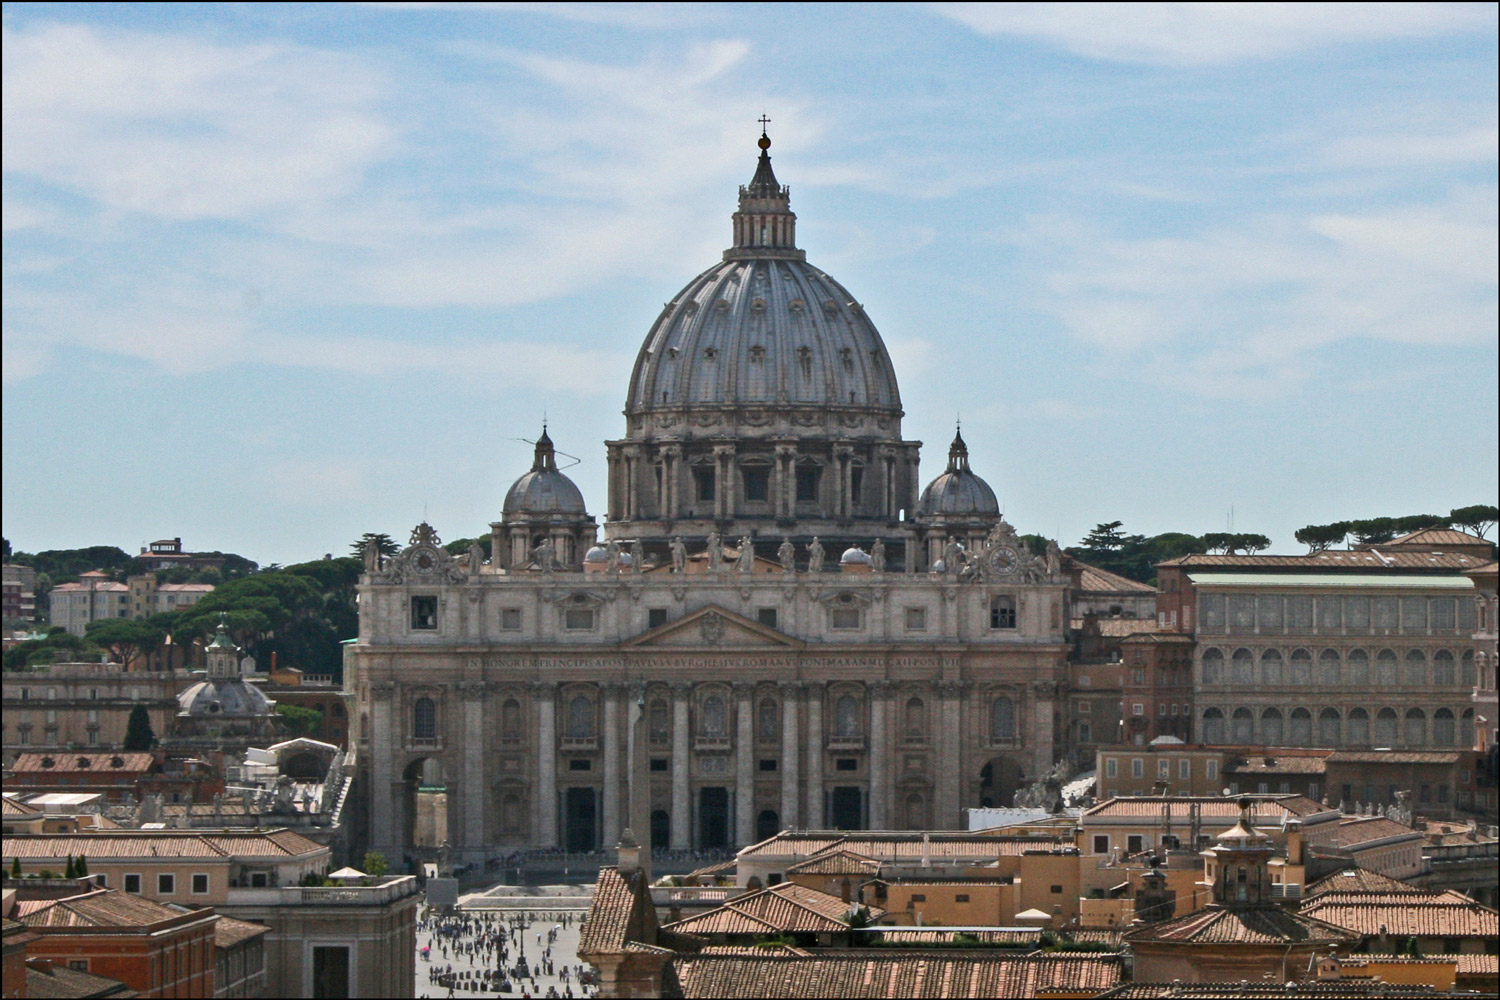 View of Saint Peter's Basilica